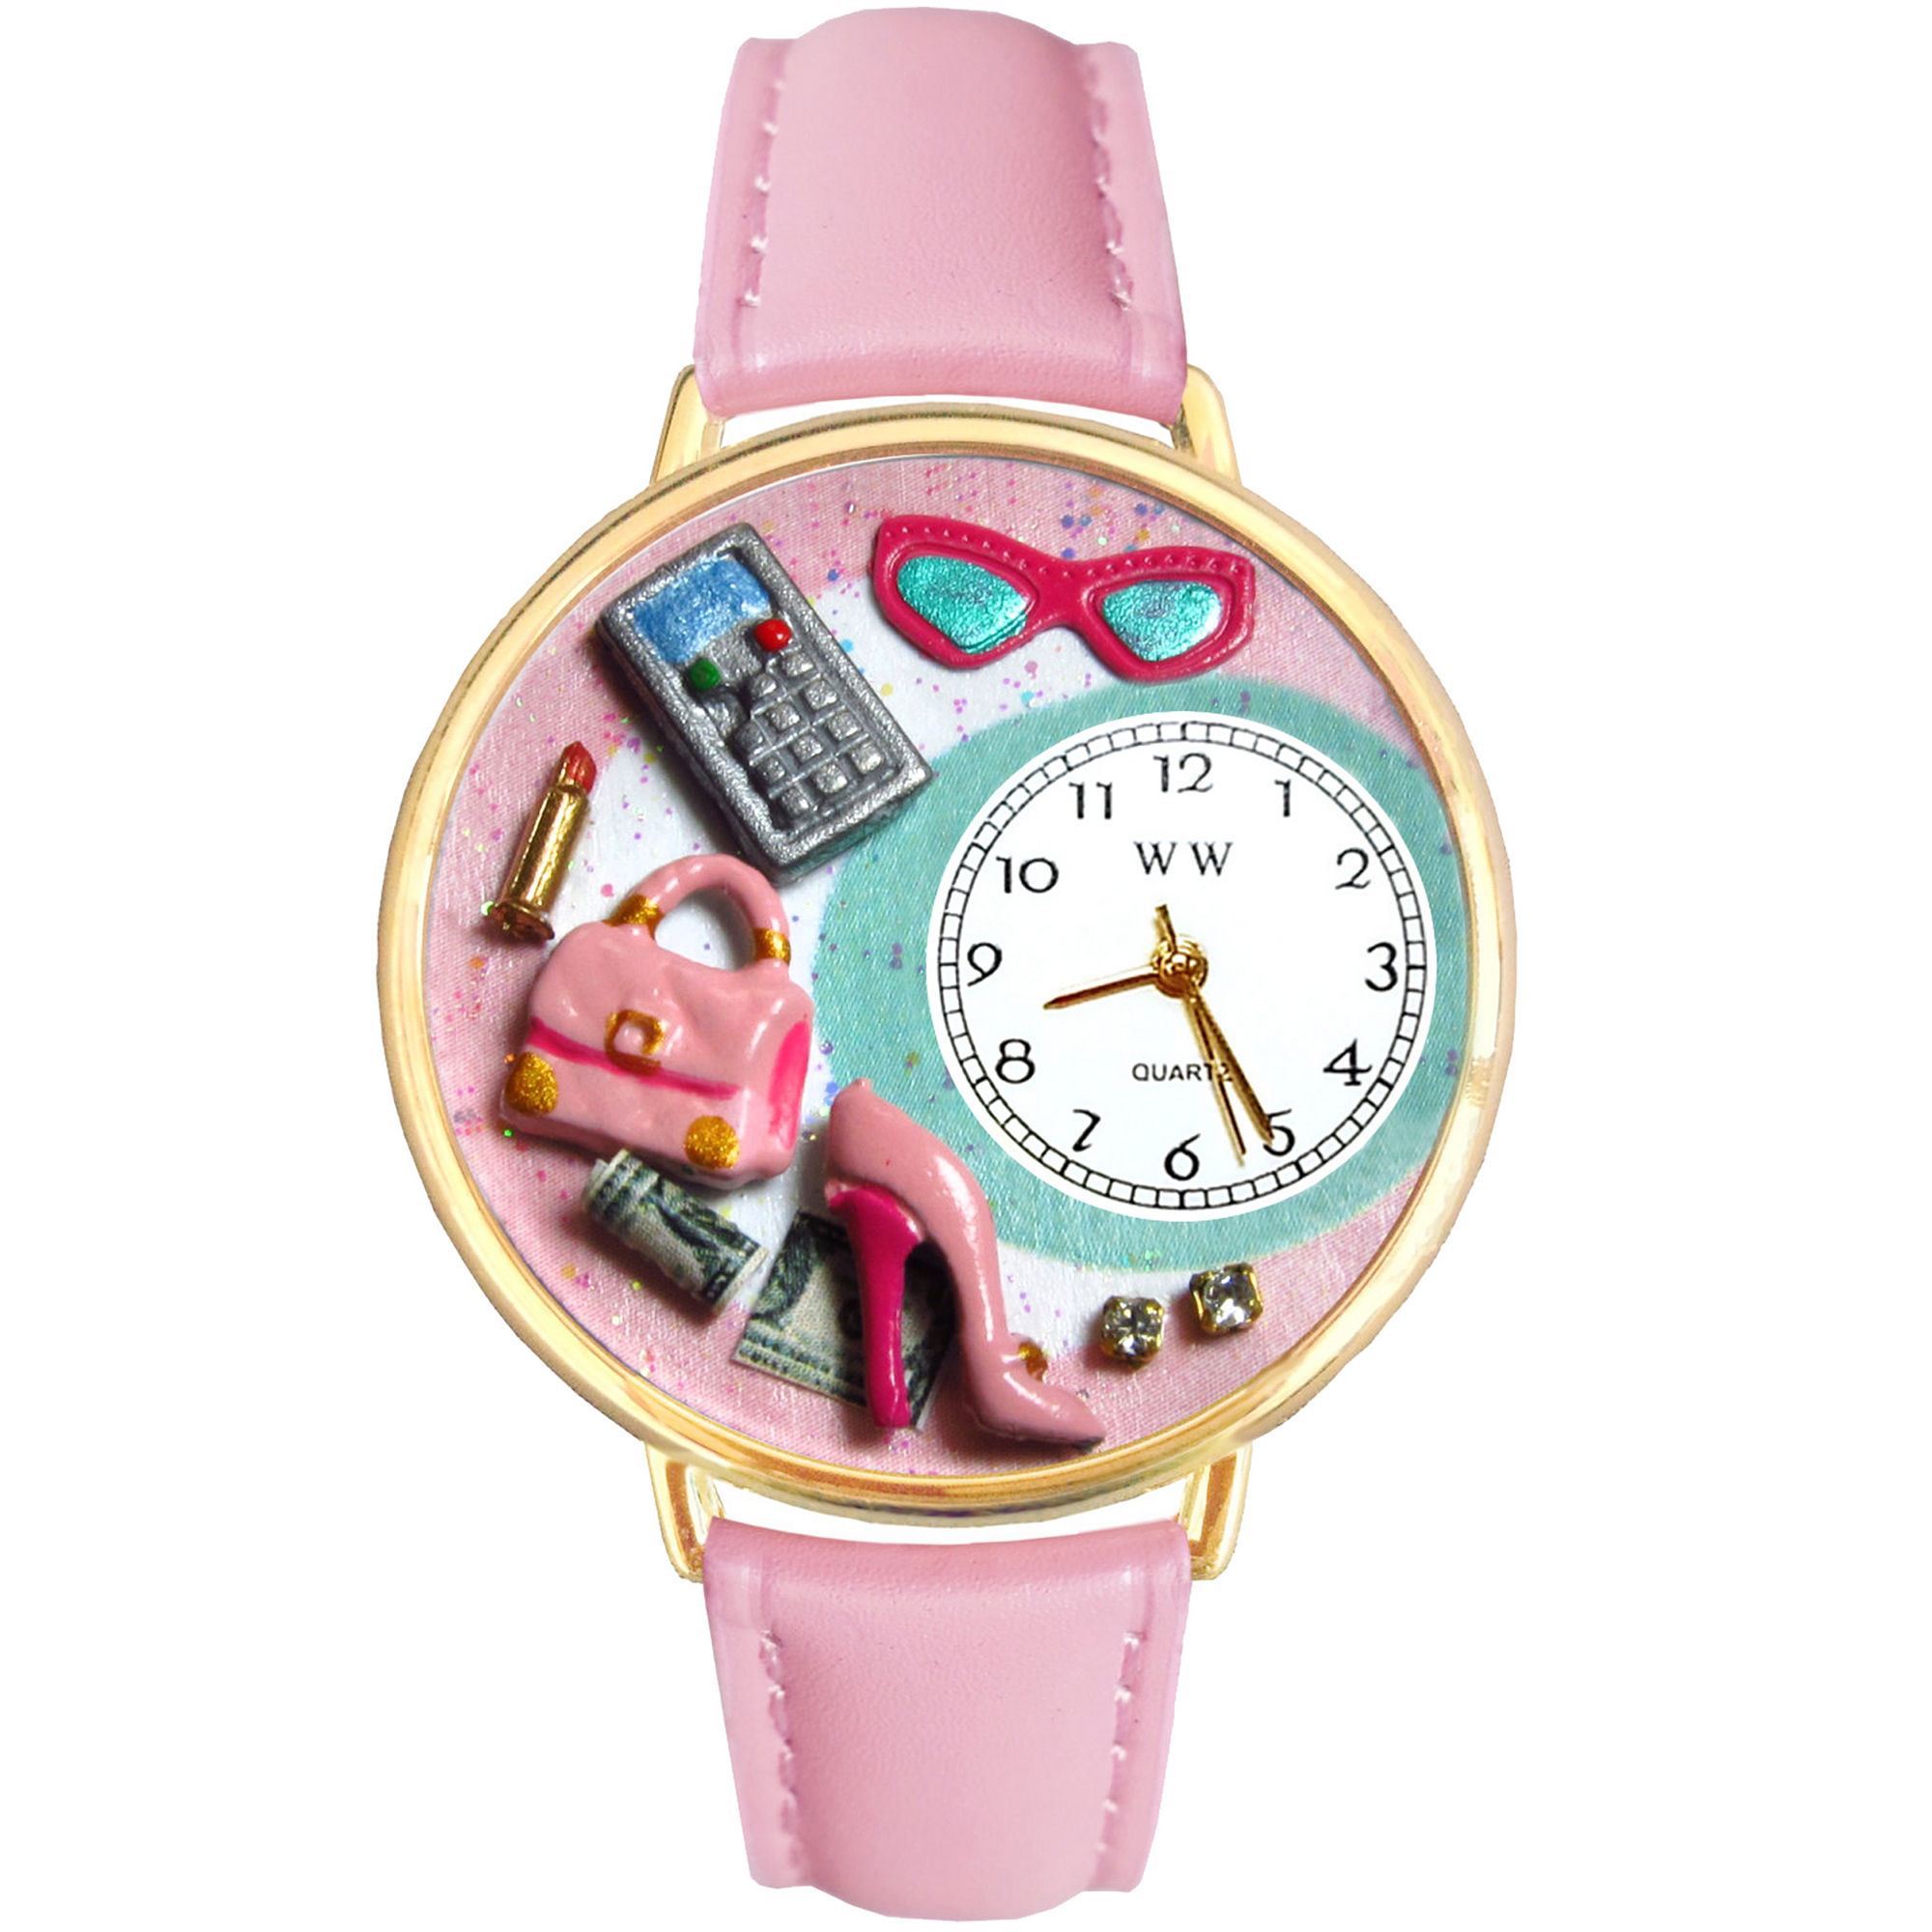 Whimsical Watches Personalized Shopper Mom Womens Gold-Tone Bezel Pink Leather Strap Watch